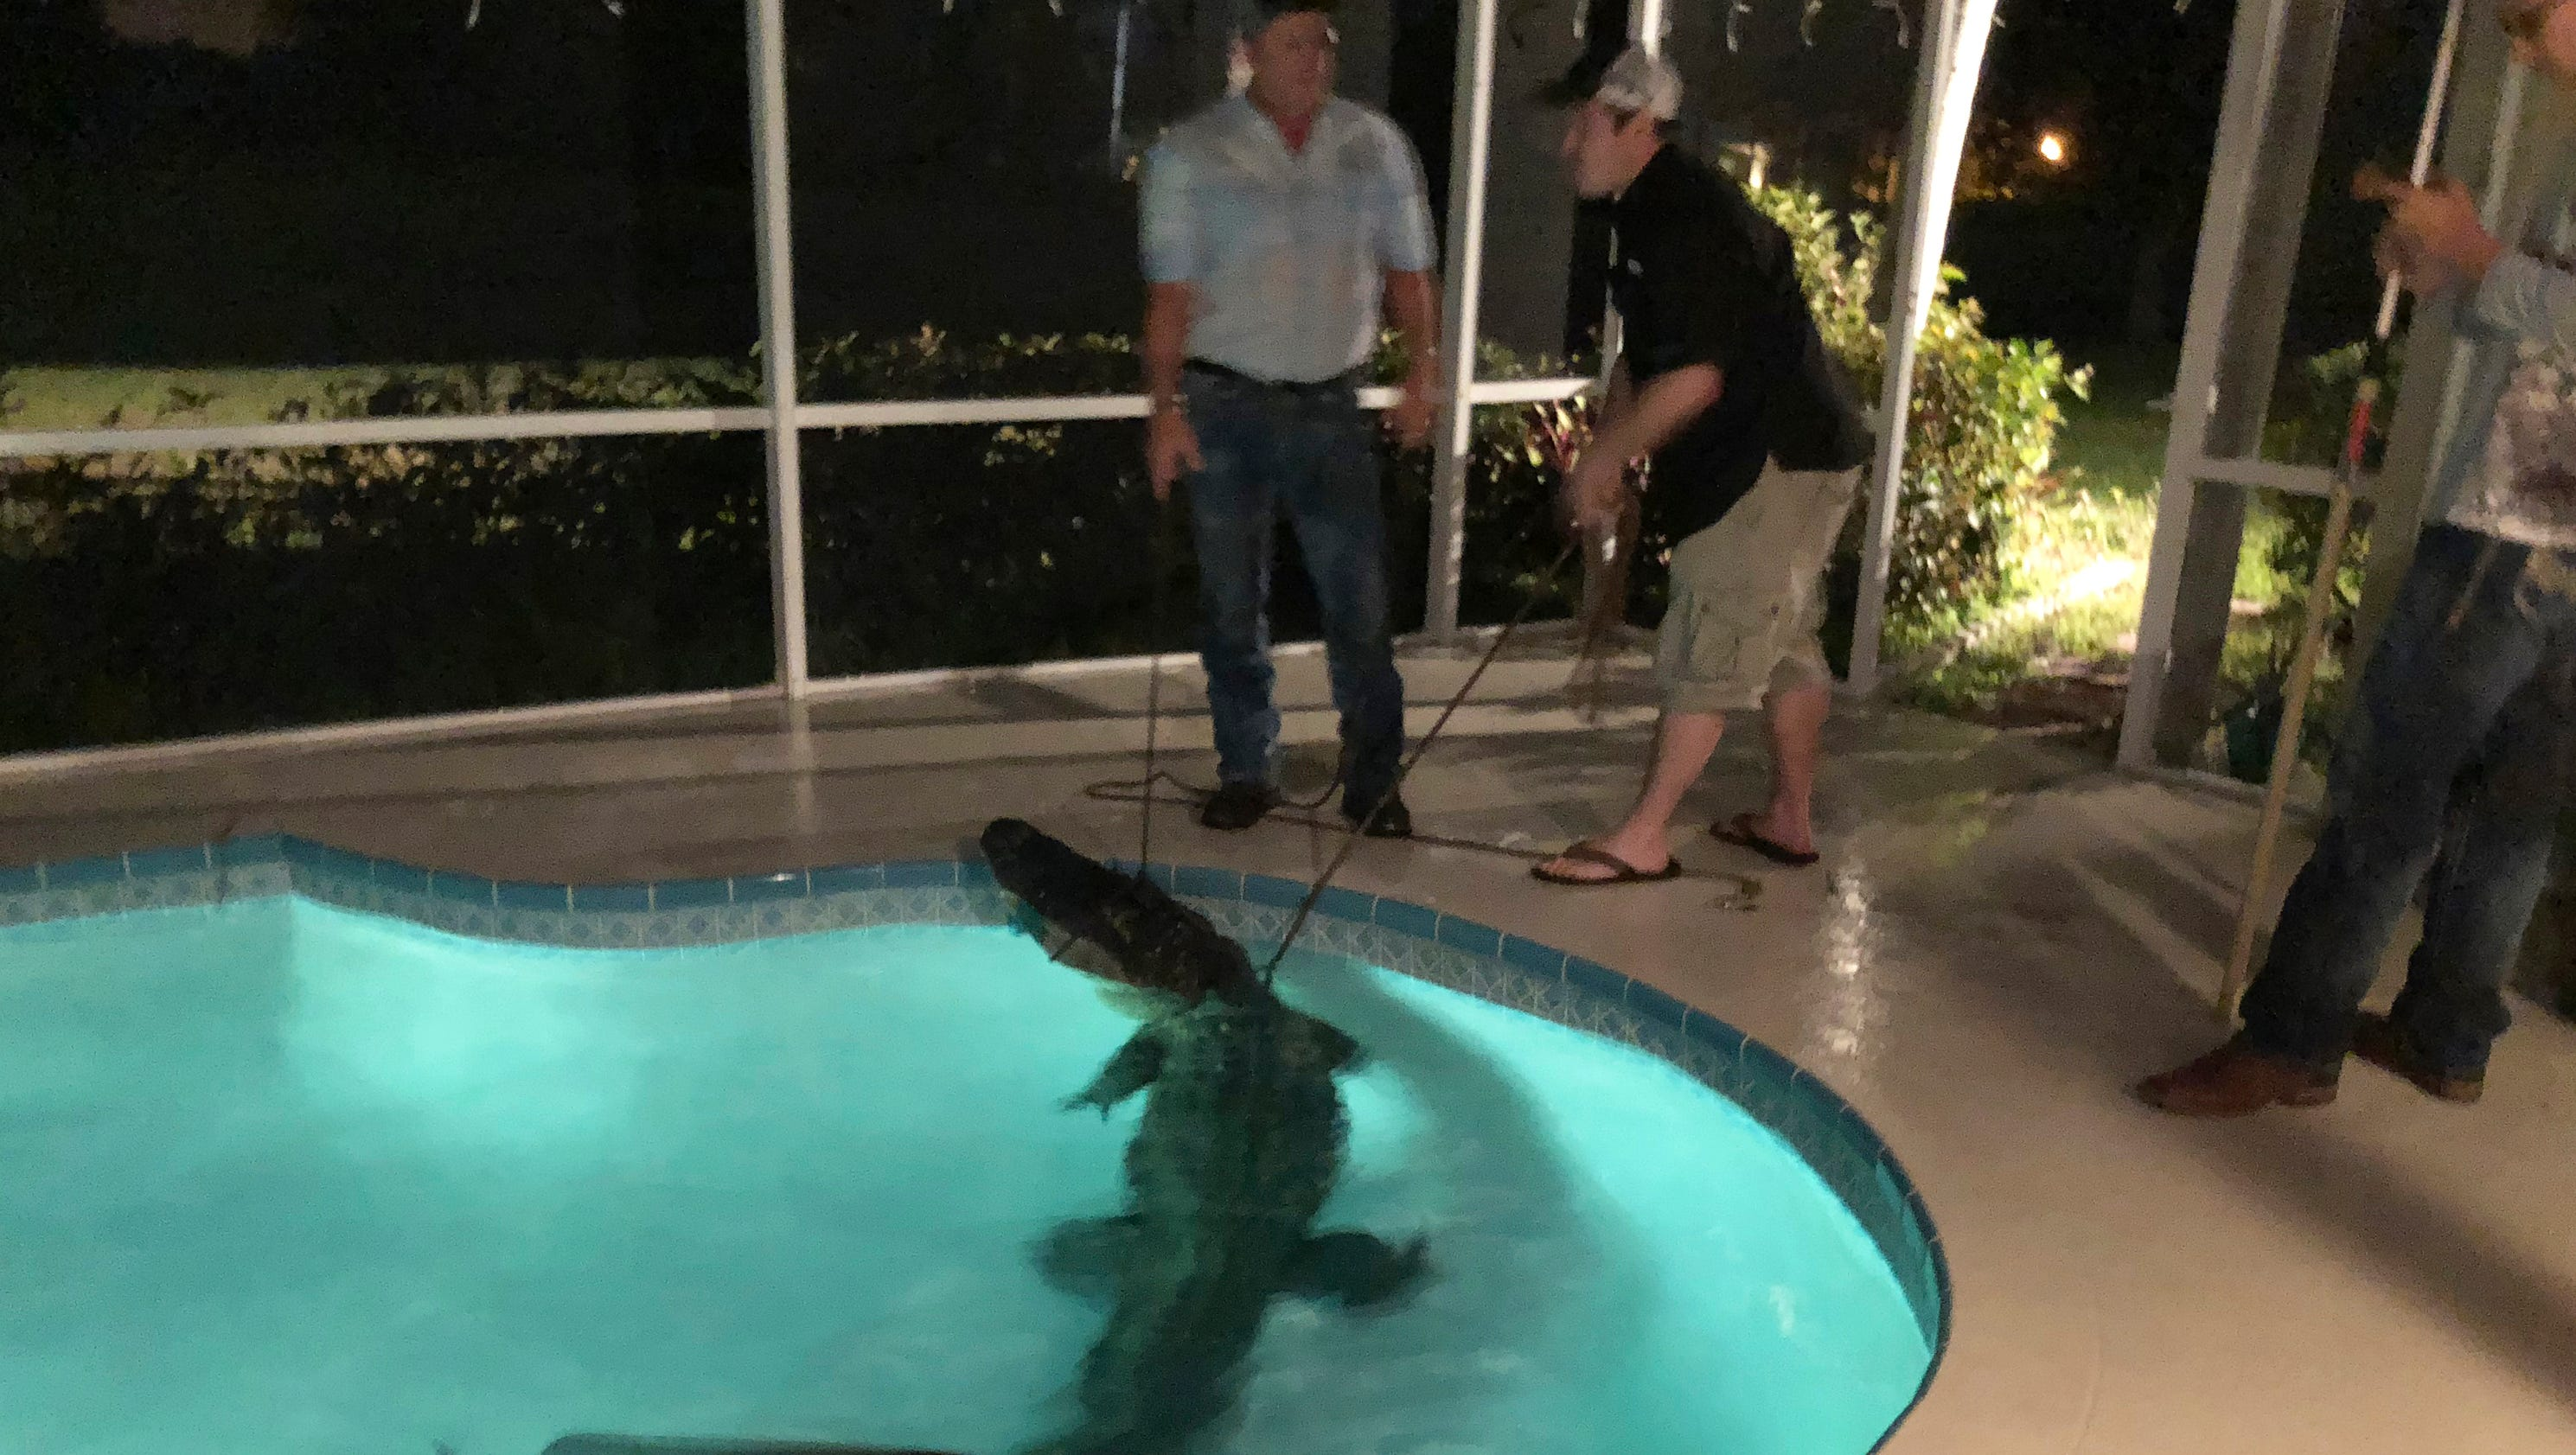 Alligator found in backyard pool in florida as reptiles warm to spring for Public swimming pools in naples florida